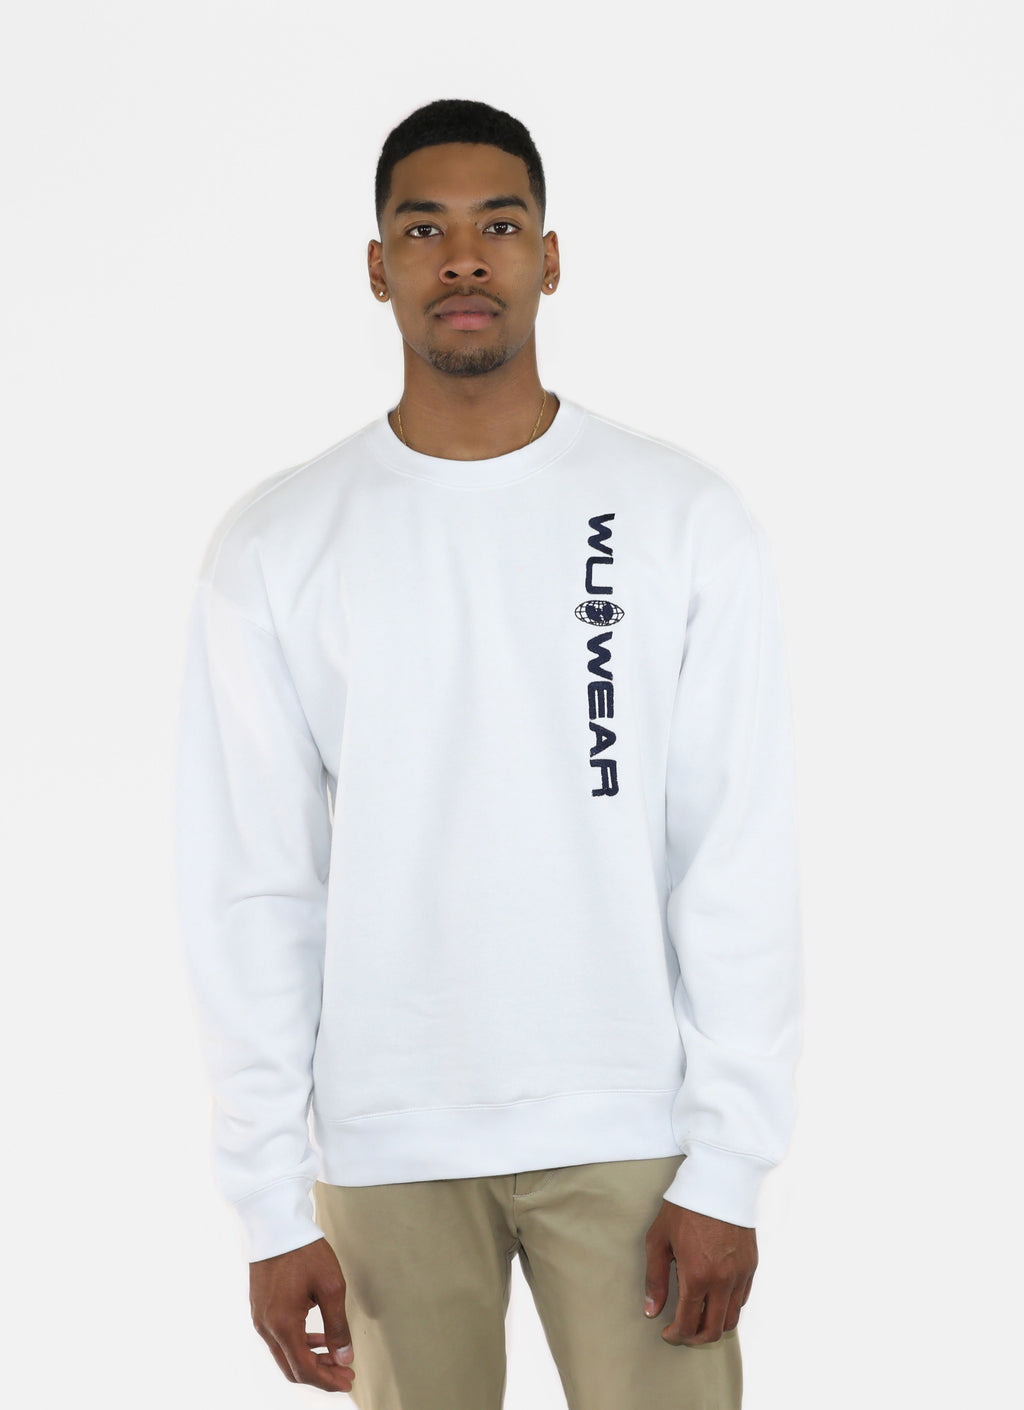 WU WEAR OG CREW - WHITE - Wu Wear